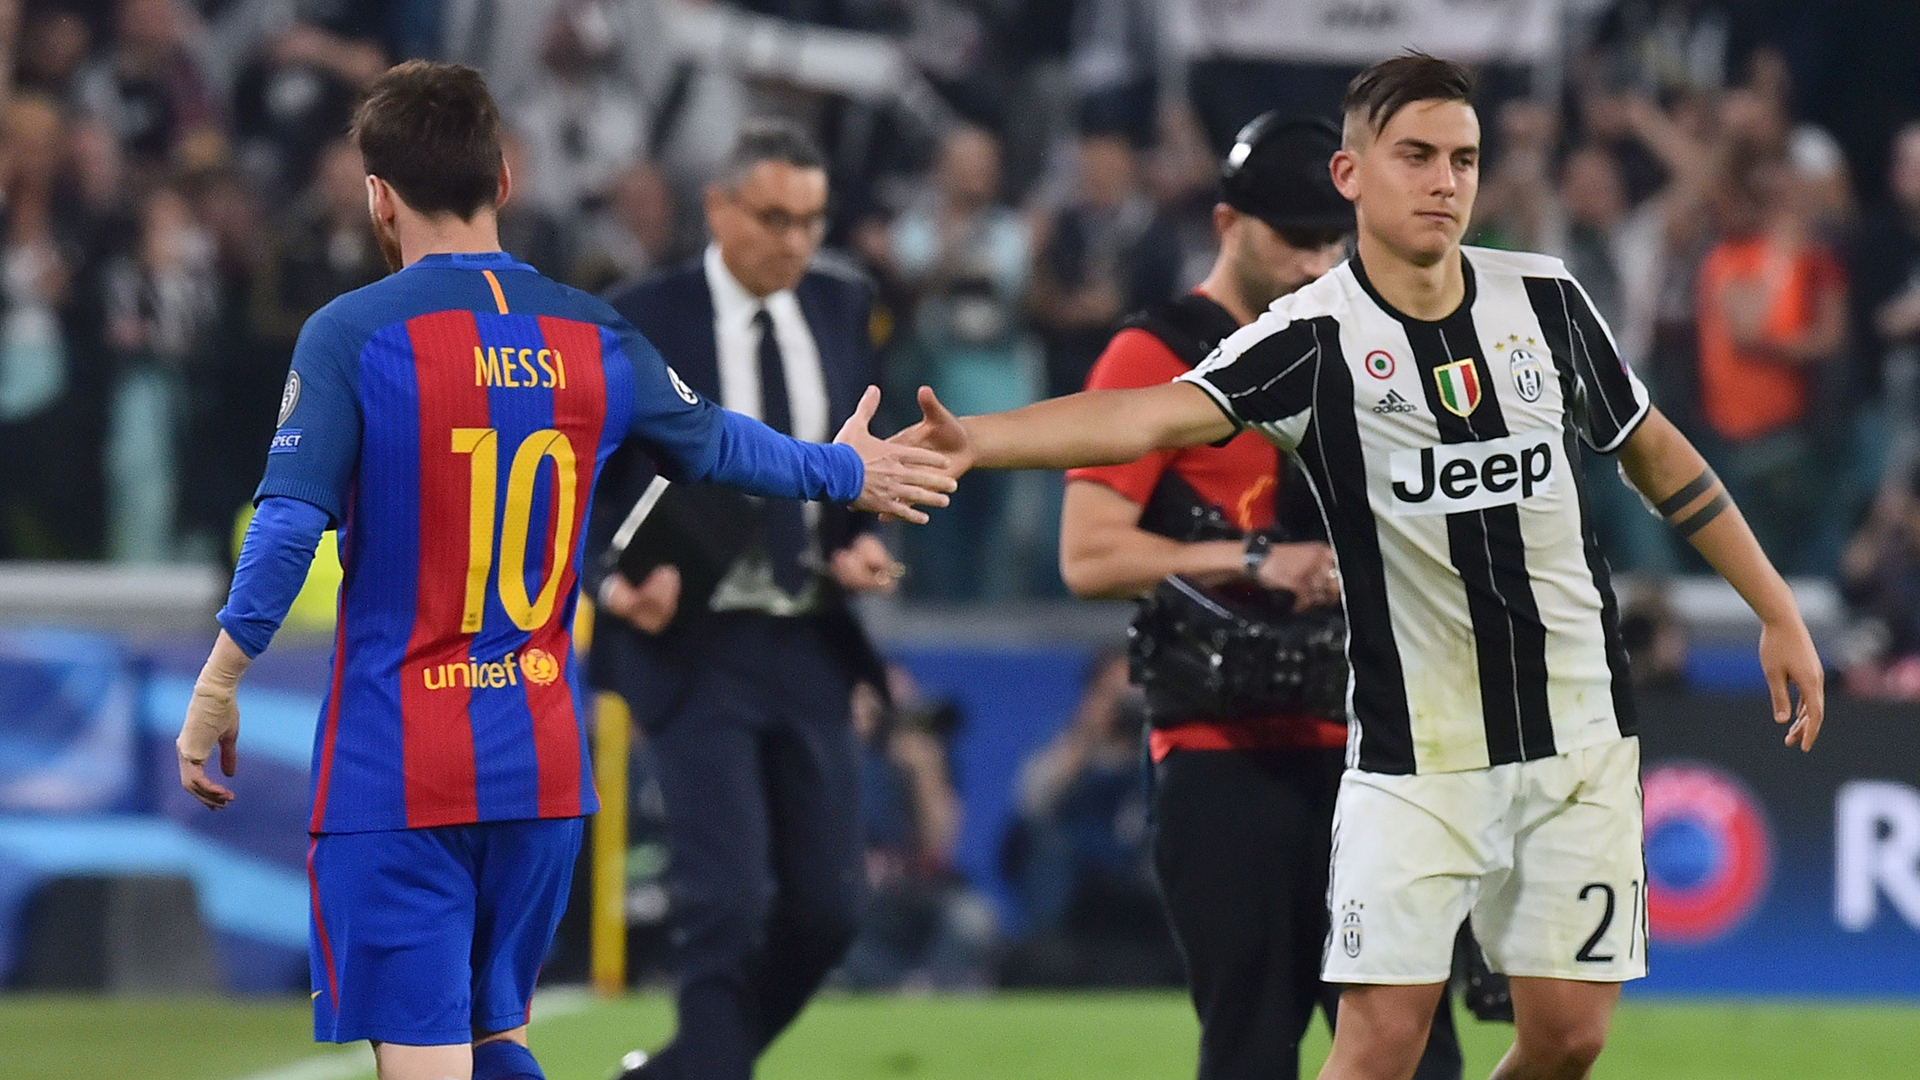 Italian senator's freaky plan involving North Korea and Juventus star Paulo Dybala